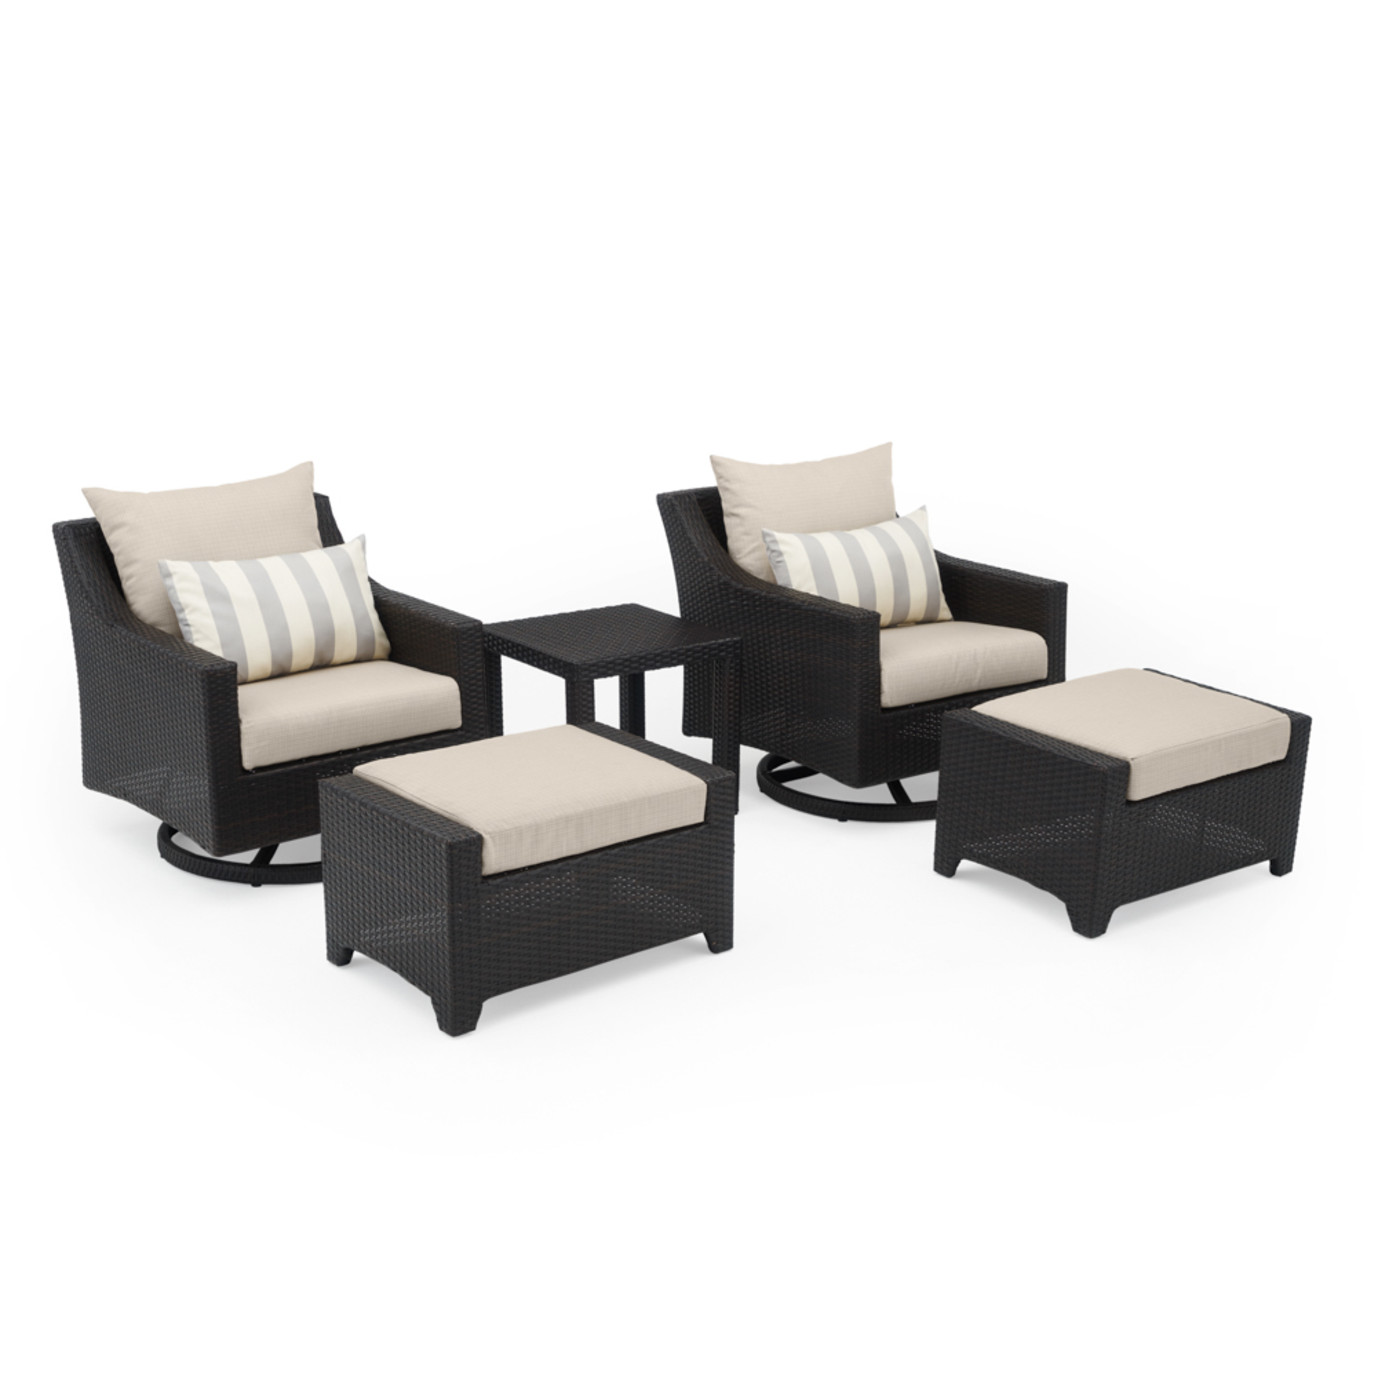 Deco 5 Piece Motion Club & Ottoman Set - Slate Gray